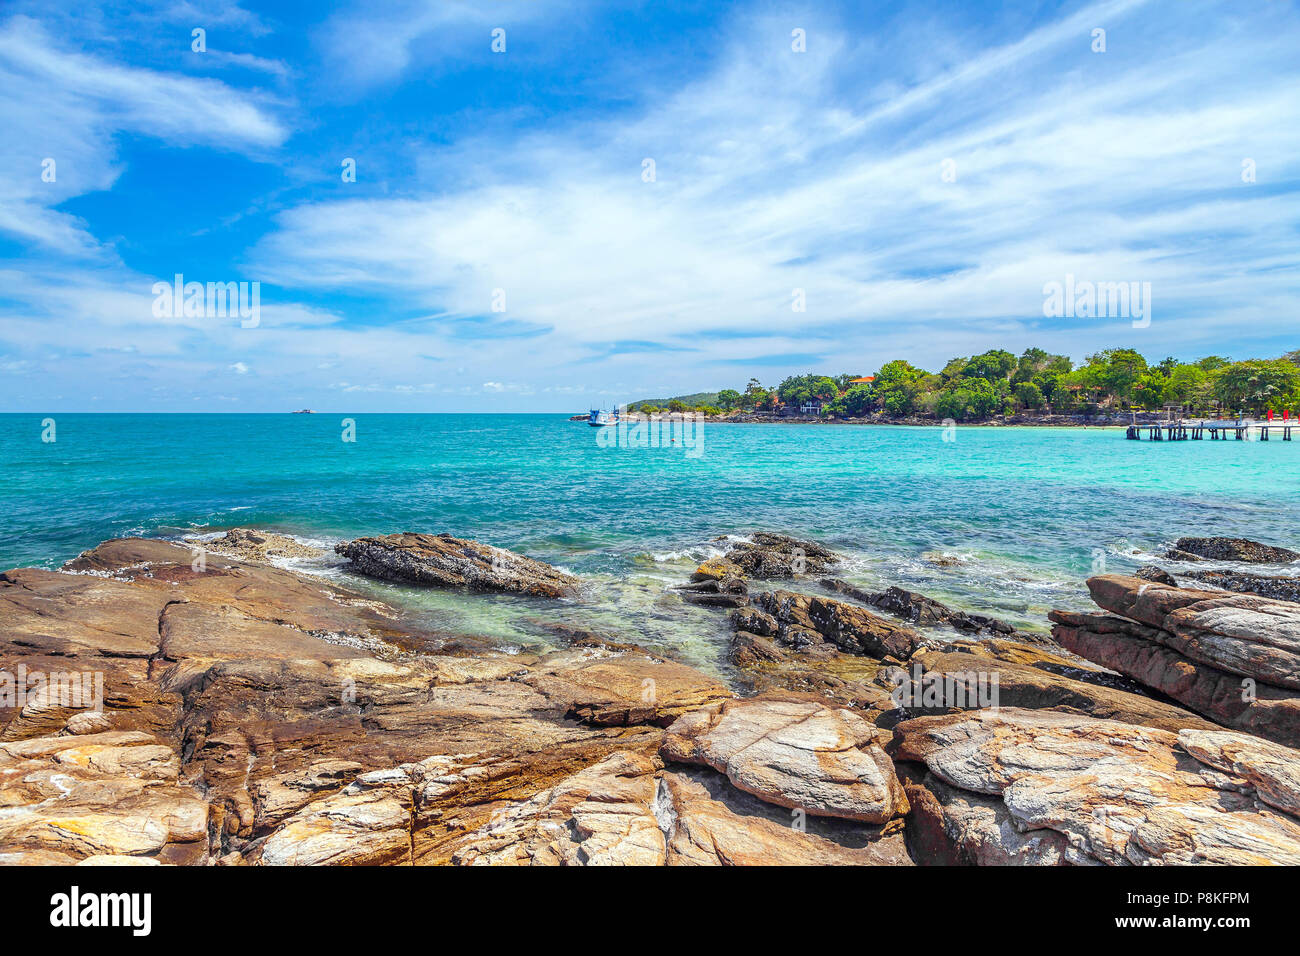 Rocky coast of Samed Island in Thailand. - Stock Image